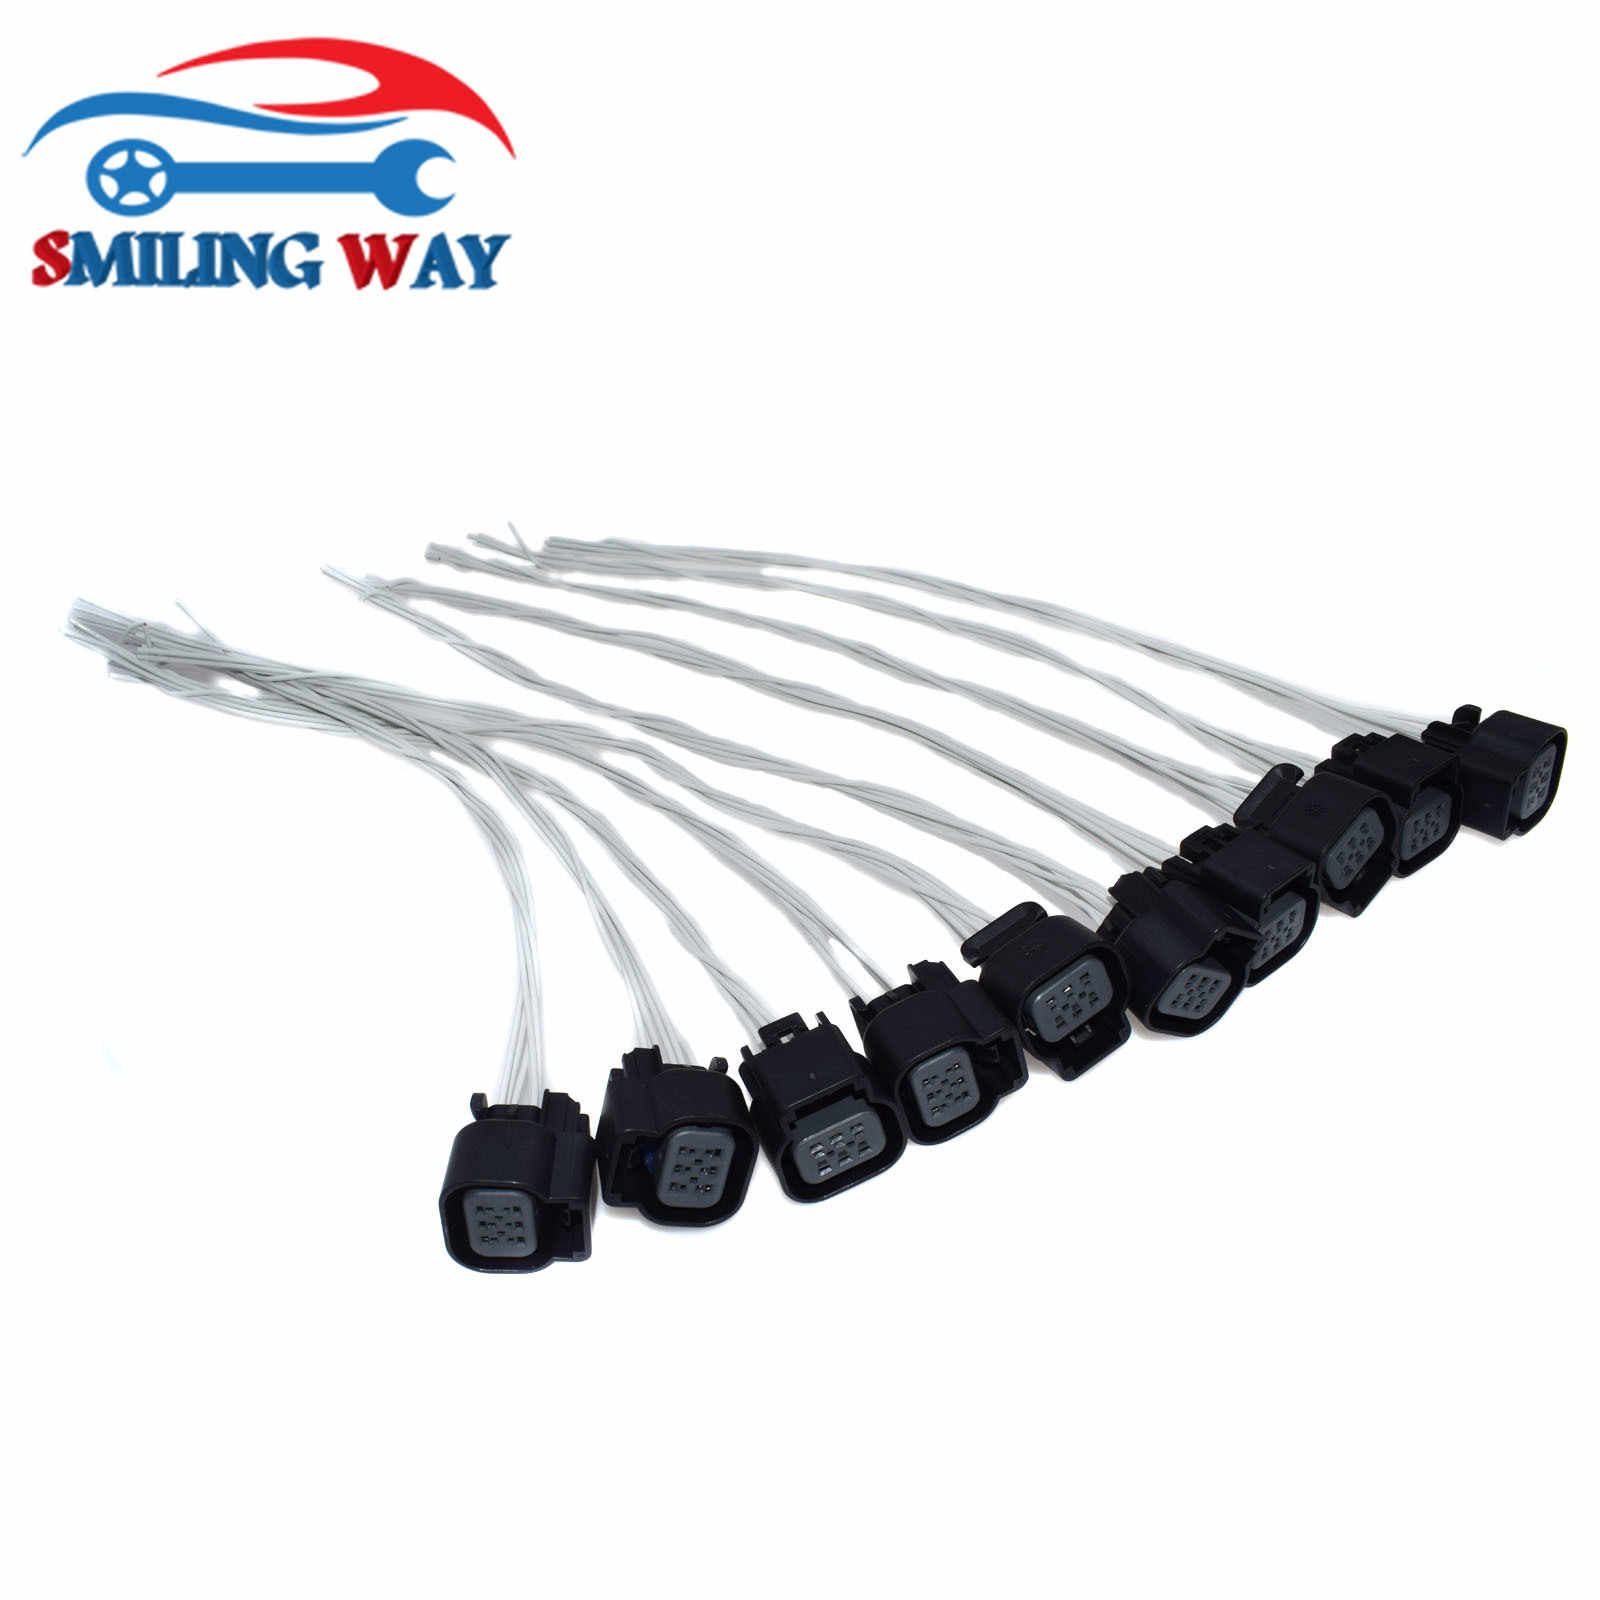 SMILING WAY# LS2 LS3 LS7 Throttle Body Actuator Connector Wire Harness  Wiring Pigtail Plug For Most GM V8 Engines 6 pins